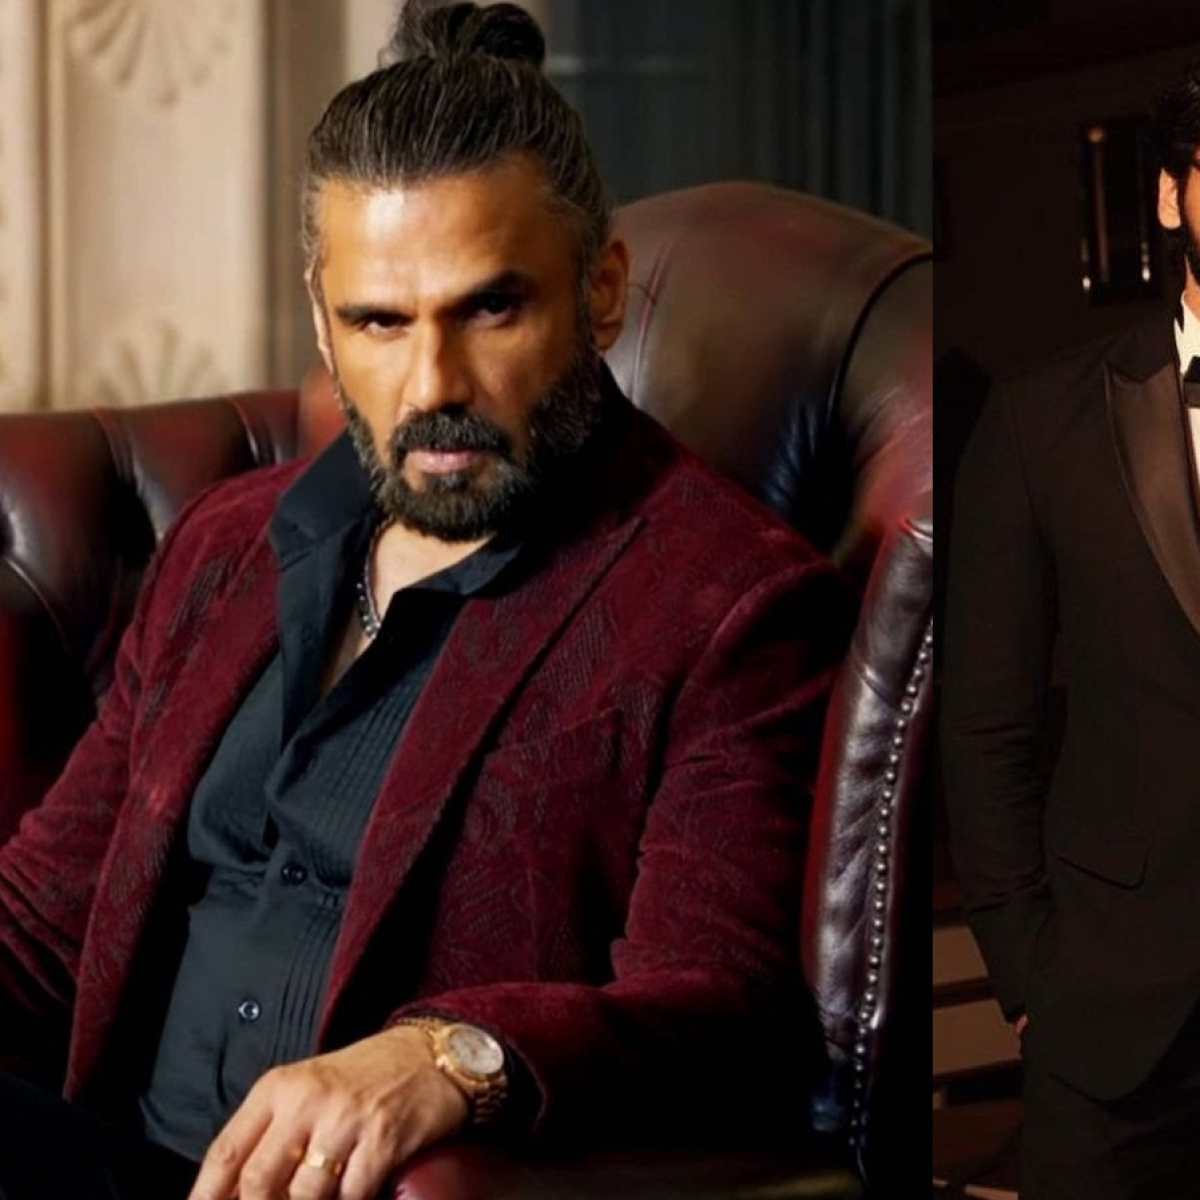 Every industry kid is called a 'druggie': Suniel Shetty on what makes him worry about his kids Athiya and Ahan